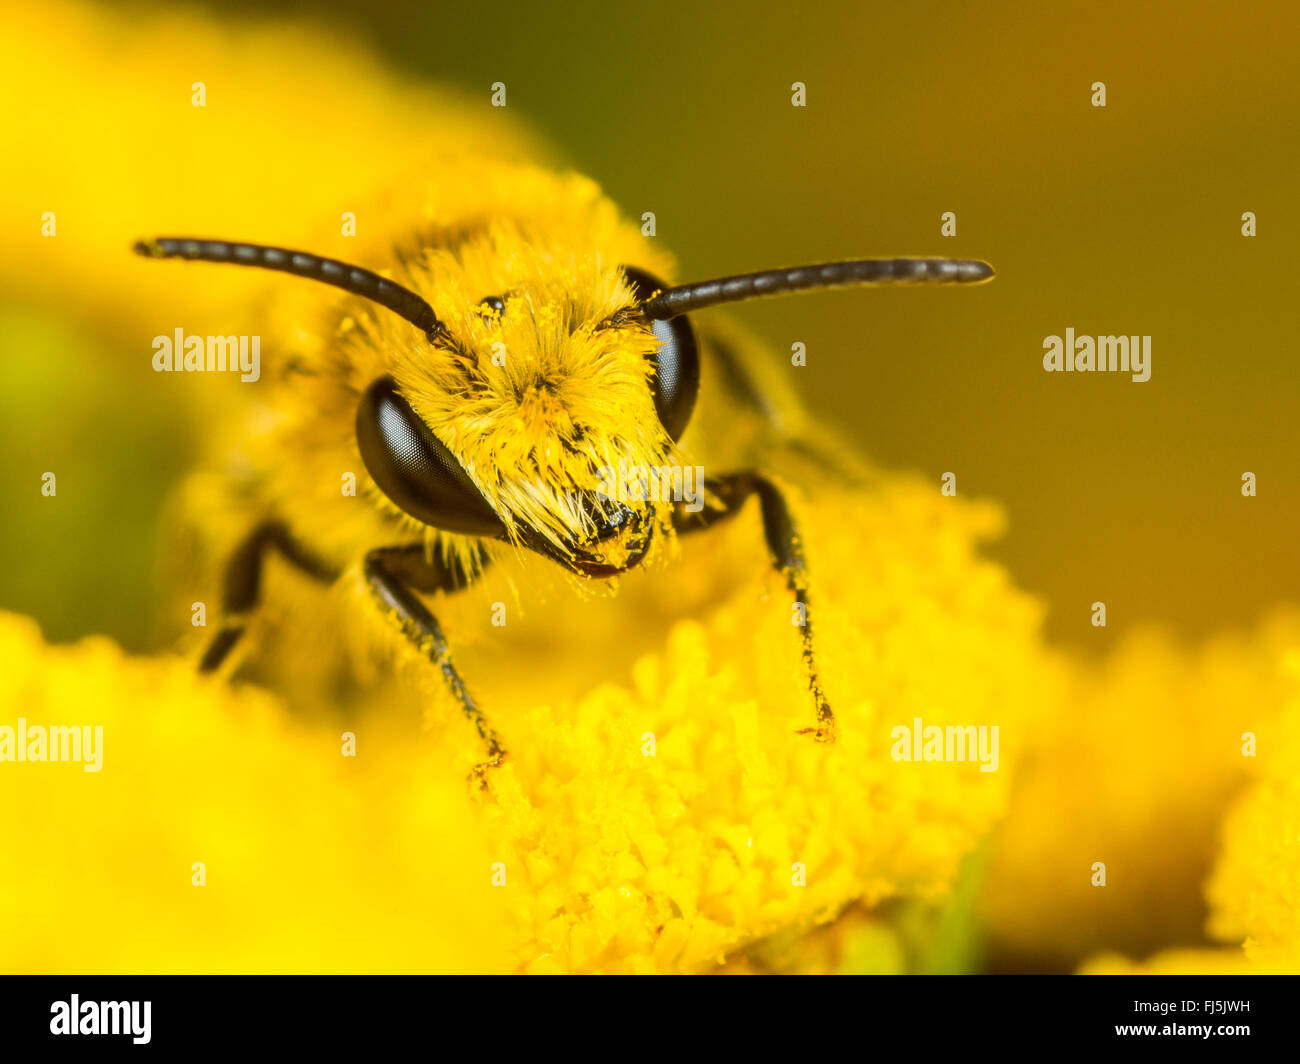 Hairy-saddled Colletes (Colletes fodiens), Male foraging on Tansy (Tanacetum vulgare), Germany - Stock Image